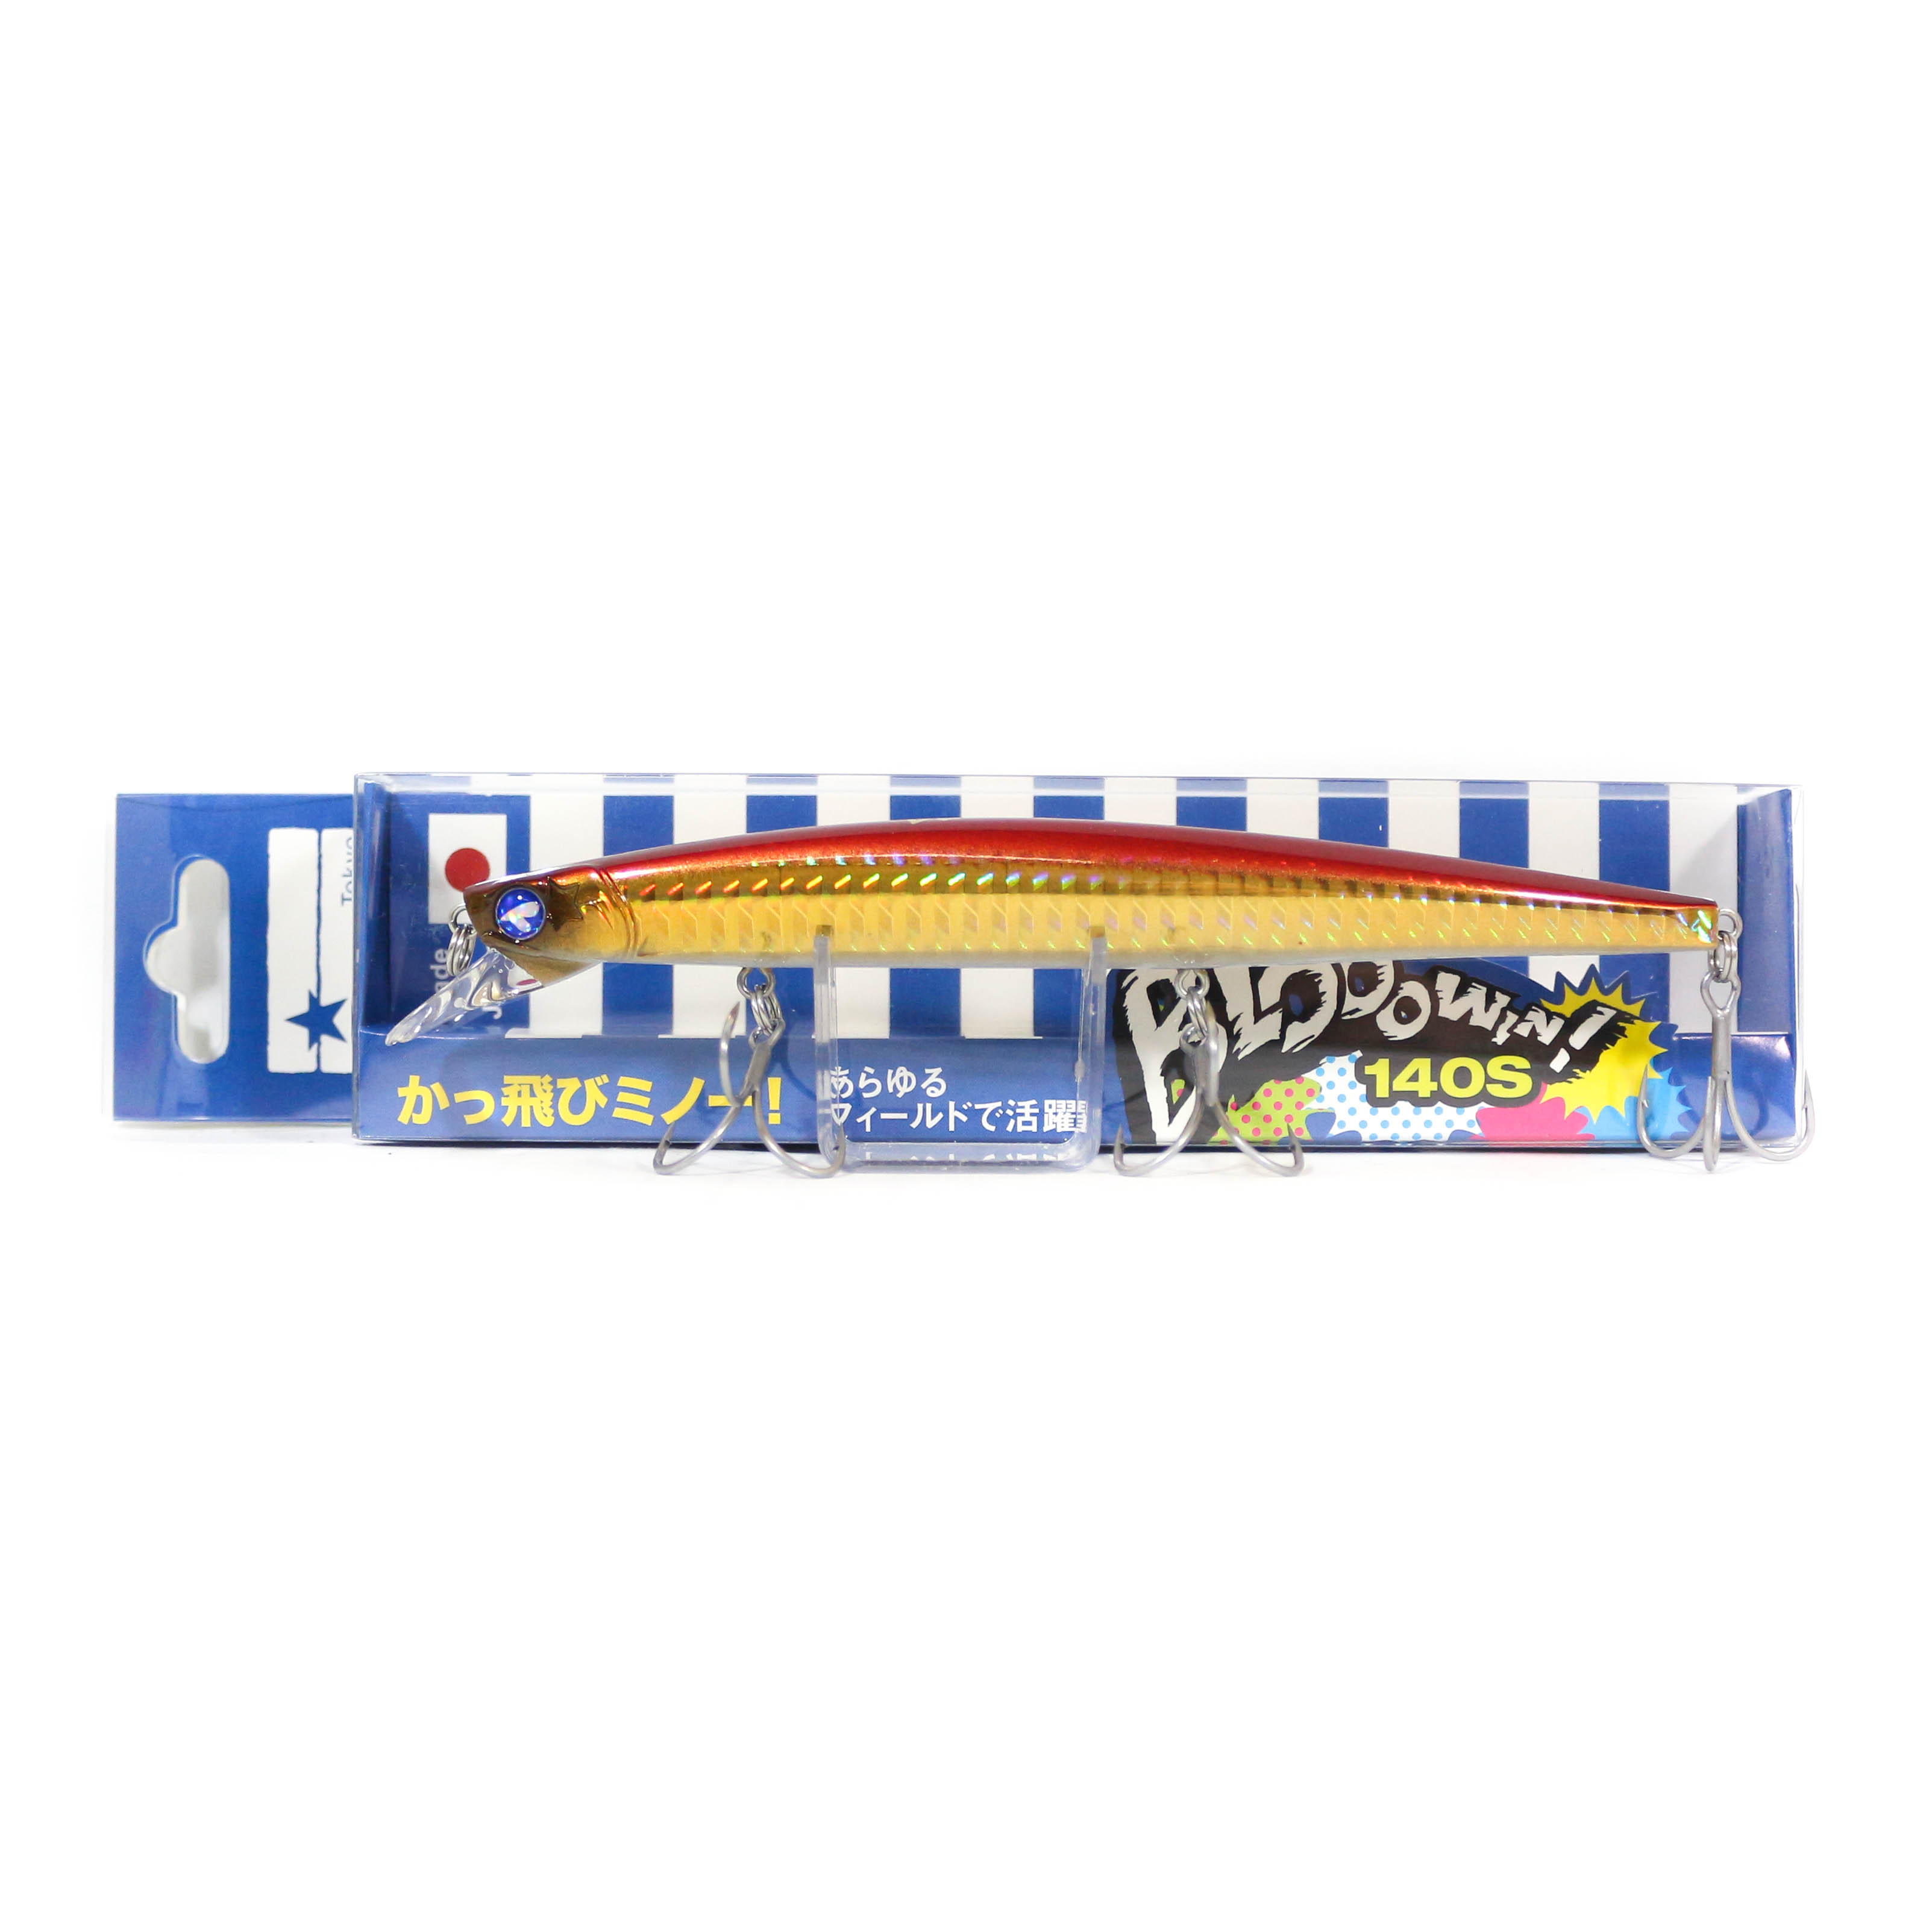 Blue Blue Blooowin 140S 23 grams Sinking Lure 09 (0917)